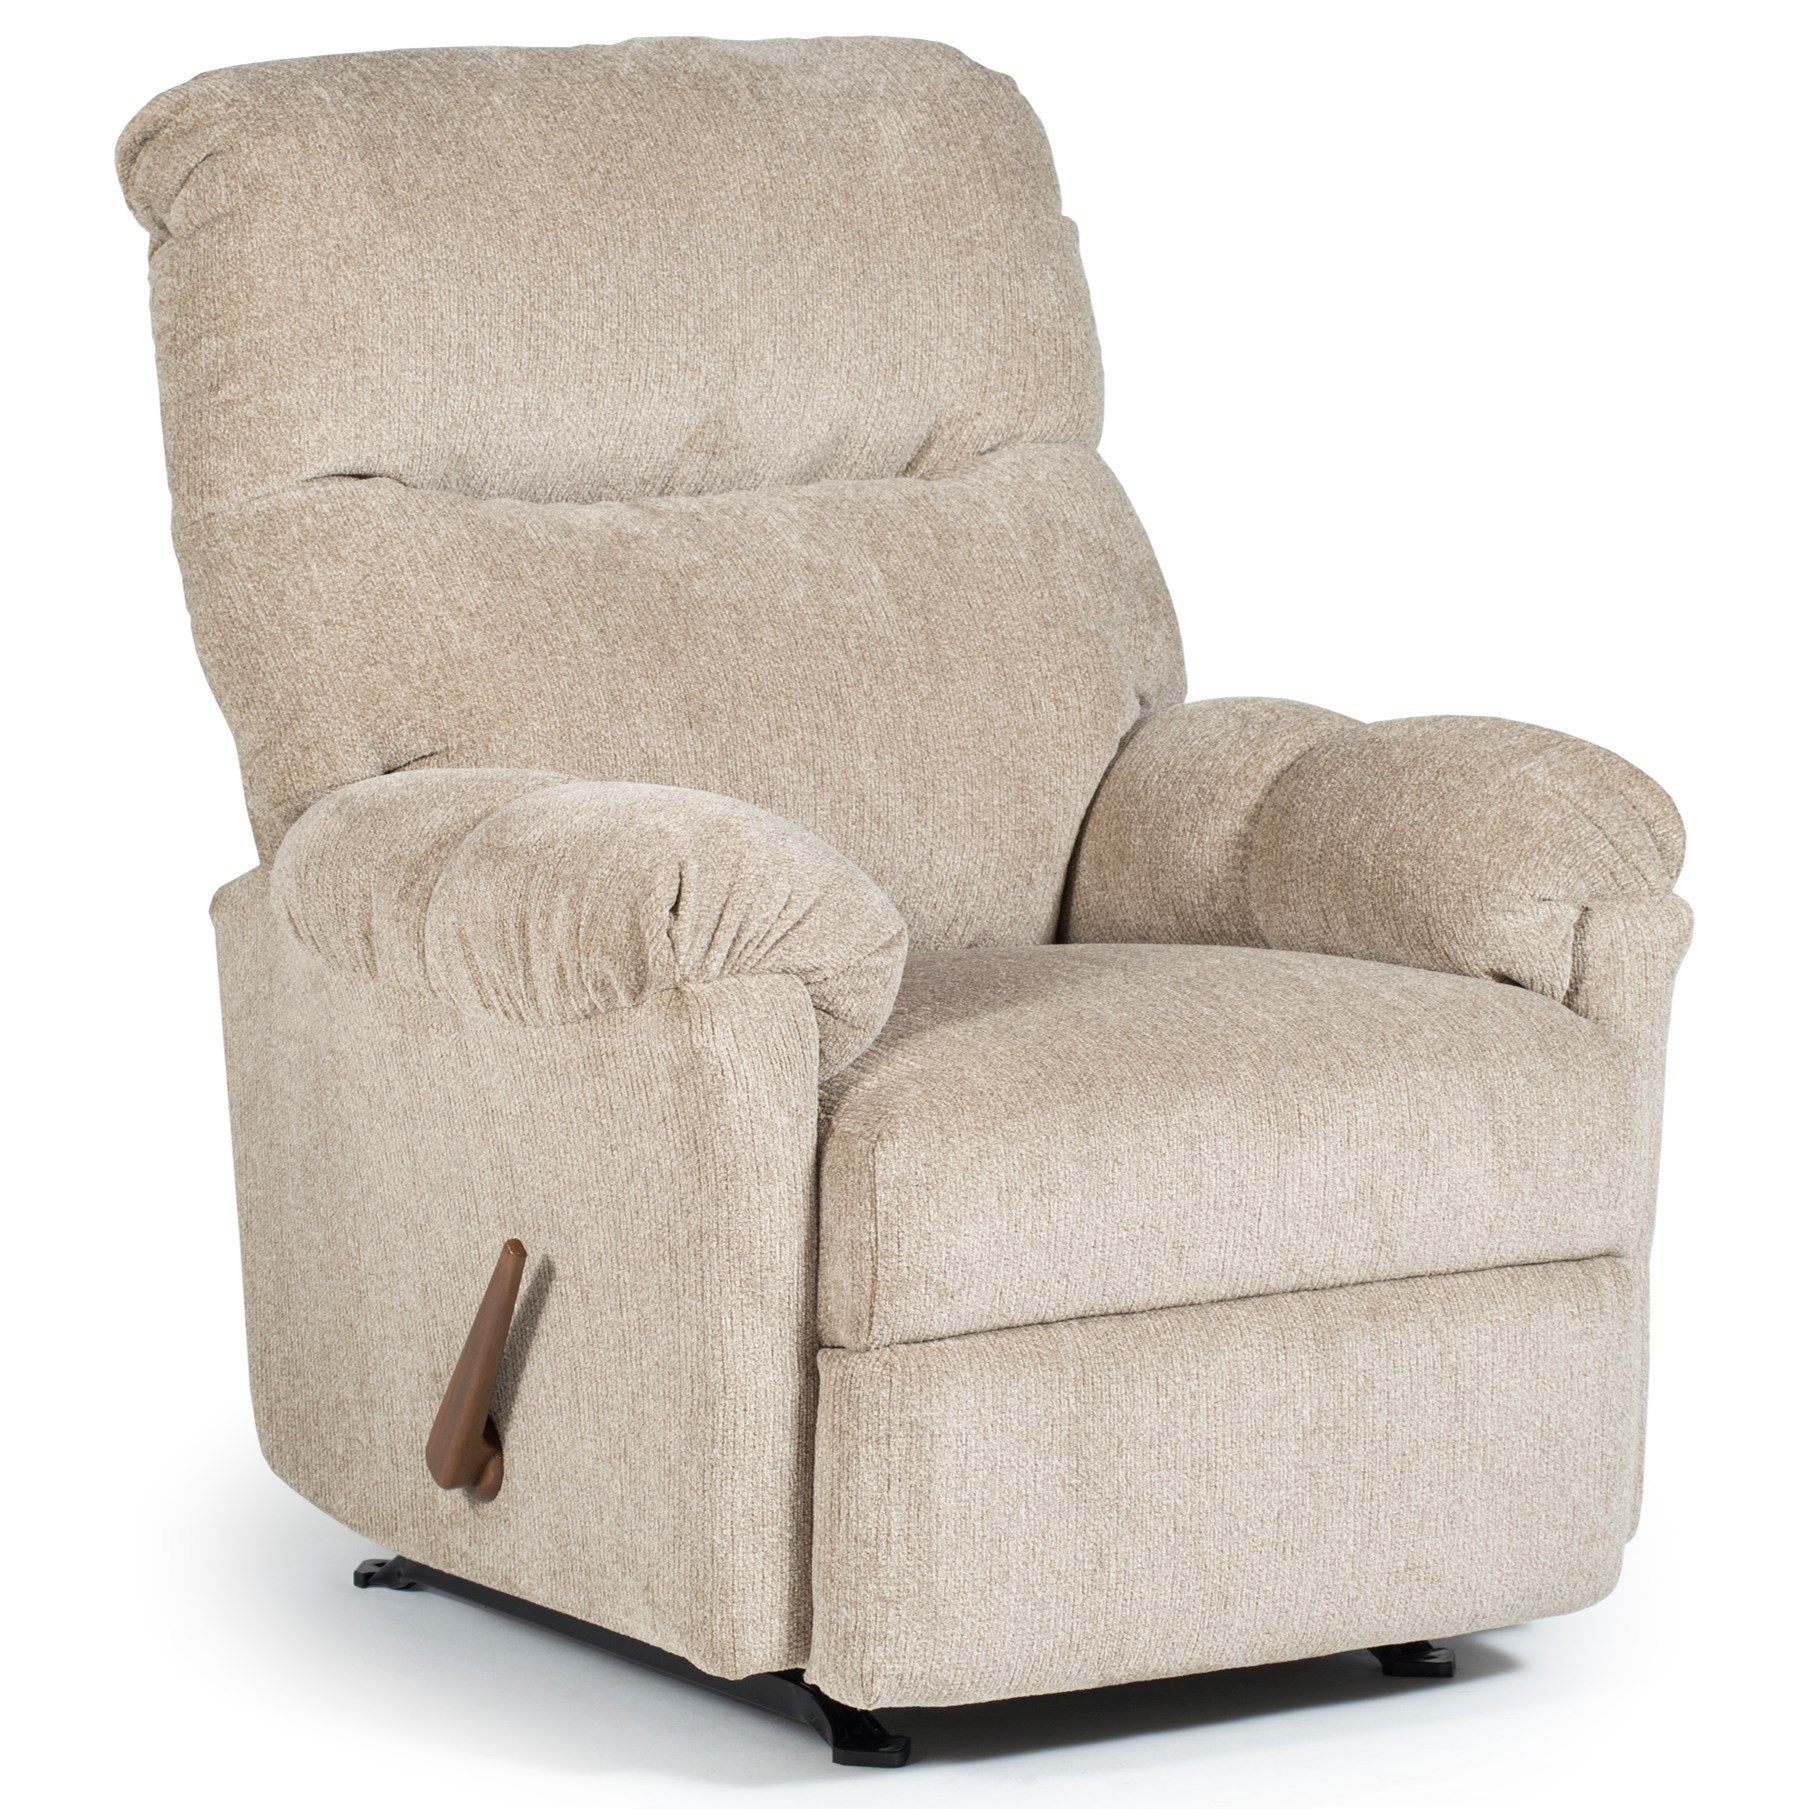 Best Home Furnishings Recliners - Medium Balmore Swivel Rocking Reclining Chair  sc 1 st  Wayside Furniture & Best Home Furnishings Recliners - Medium Balmore Swivel Rocking ... islam-shia.org